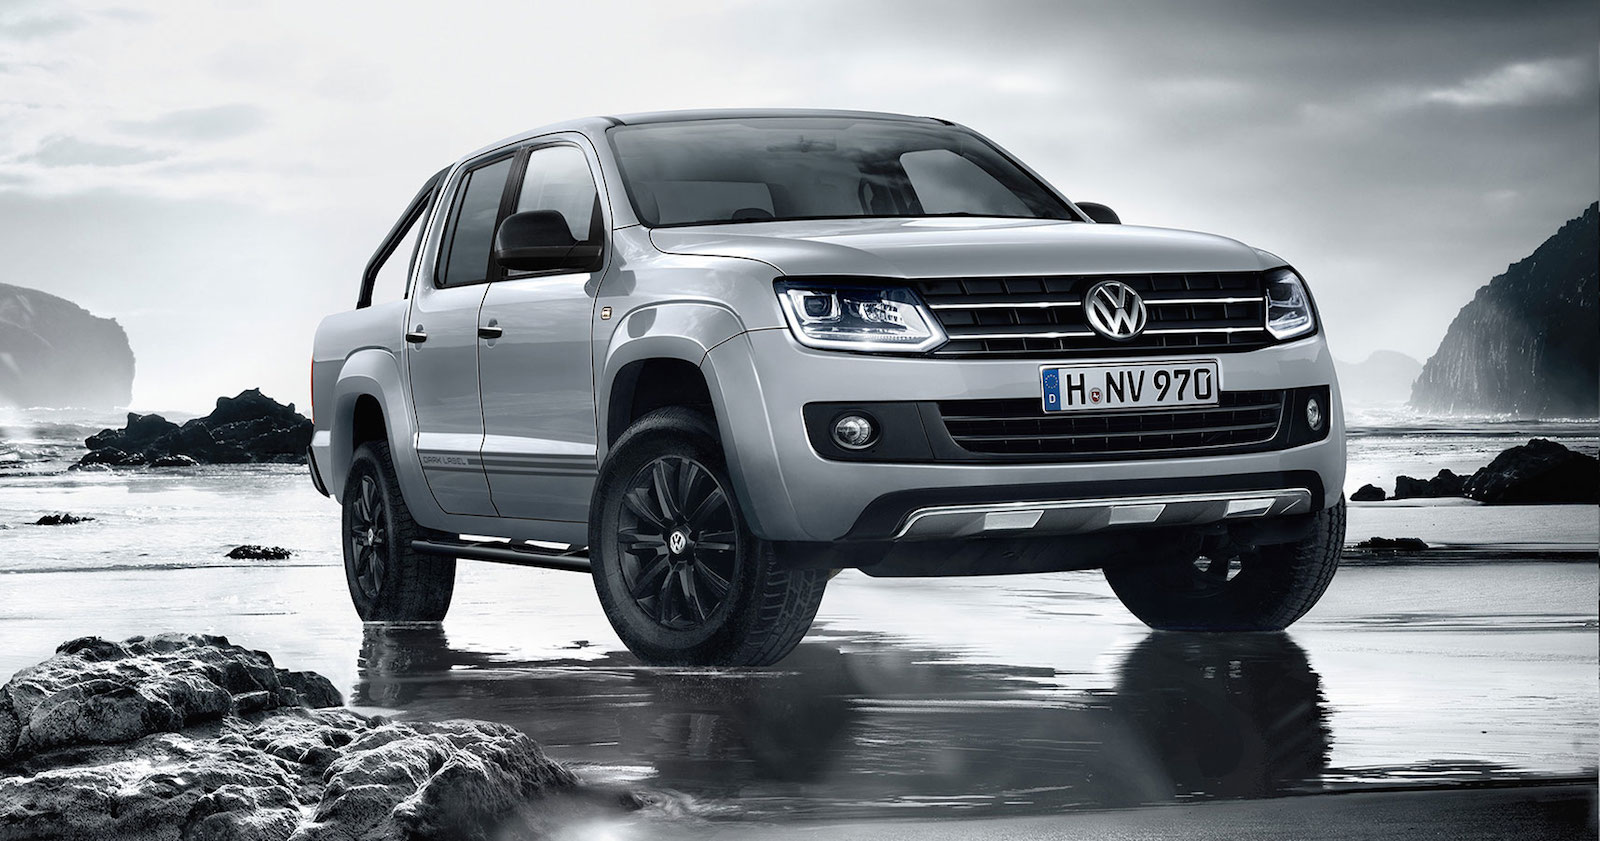 2016 volkswagen amarok g ncellenen fiyat listesi uygun ta t. Black Bedroom Furniture Sets. Home Design Ideas